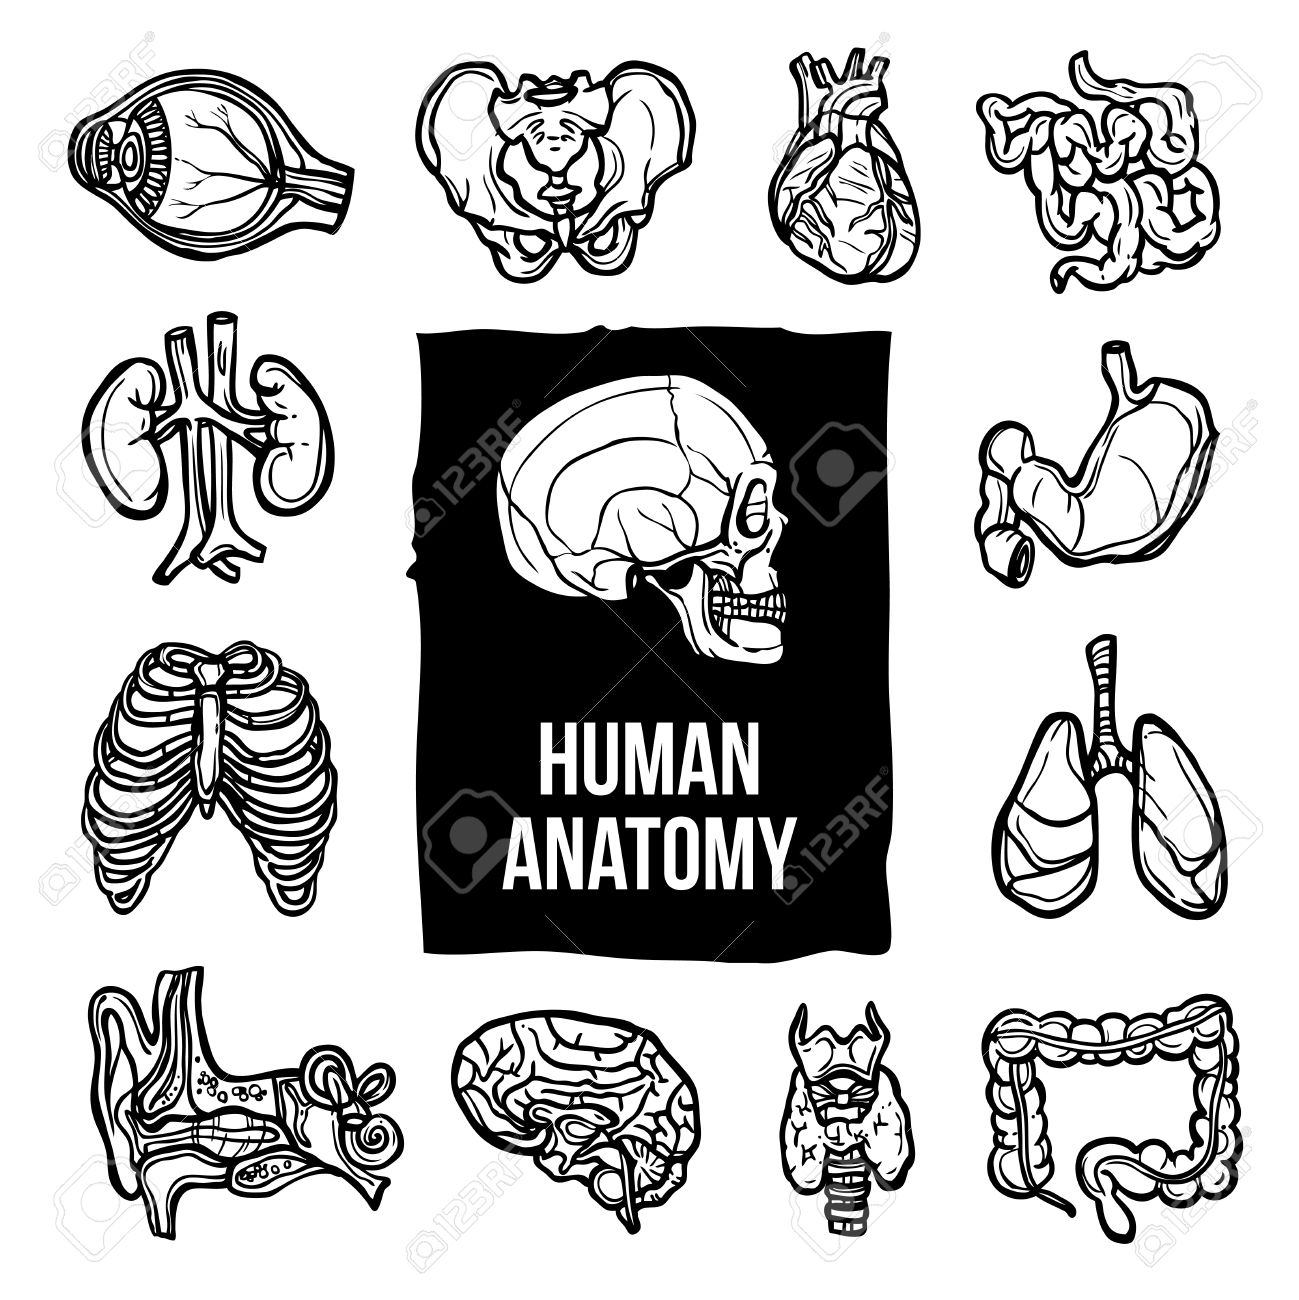 Humbody Organs Drawing At Getdrawings